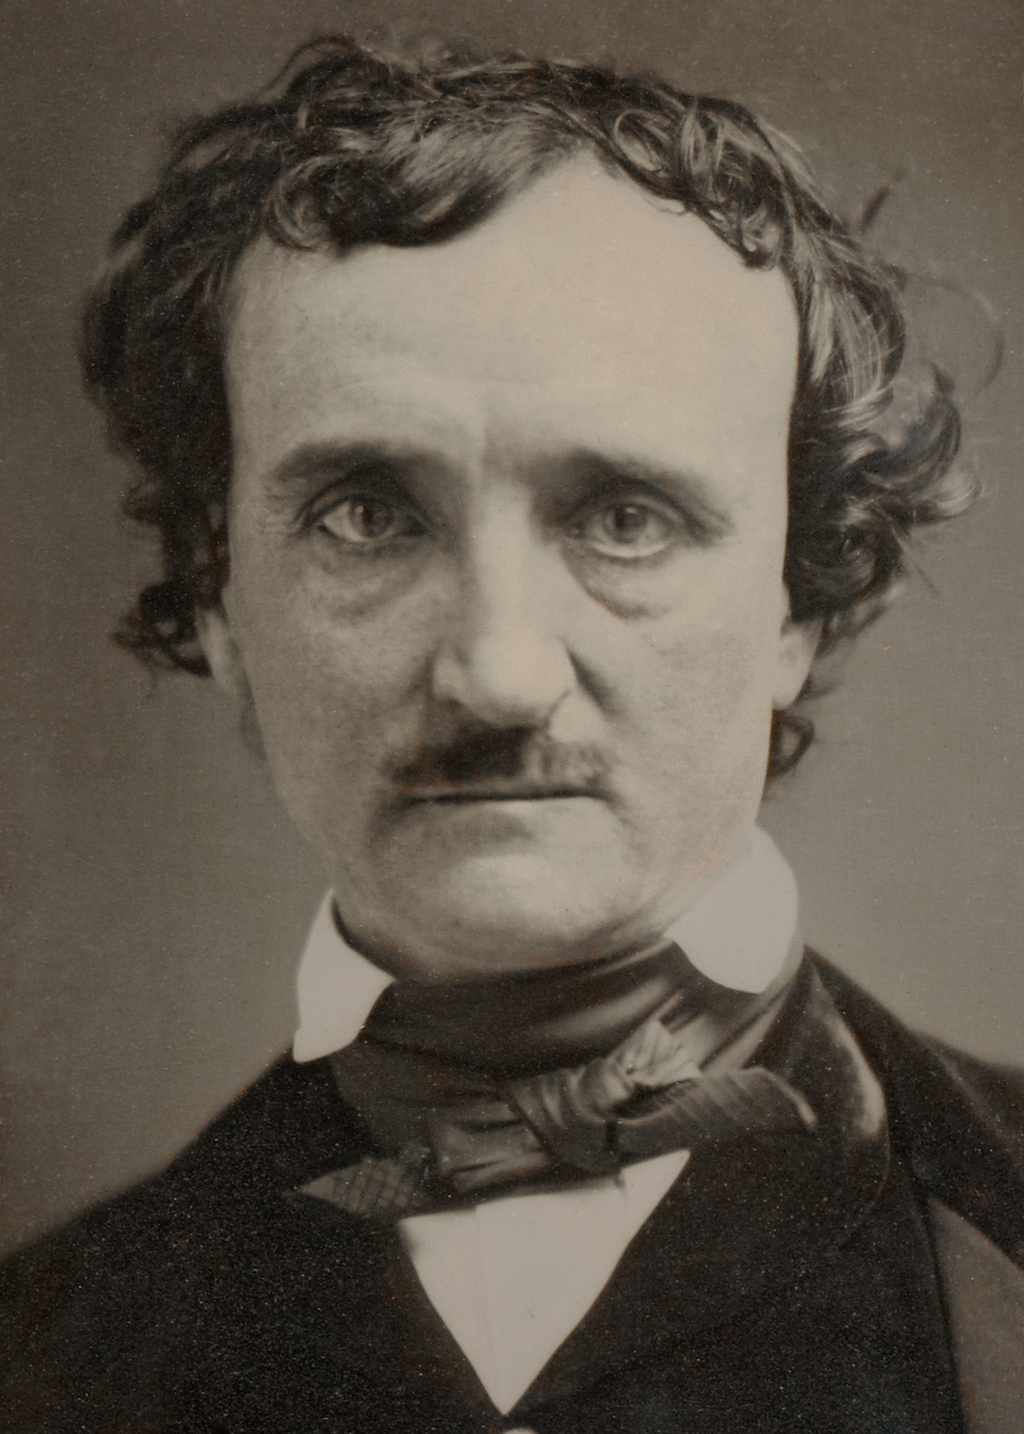 Dickensons color caste denomination - 2 Jan 23 Edgar Allan Poe 1809 1849 Poetry Fdn Only This